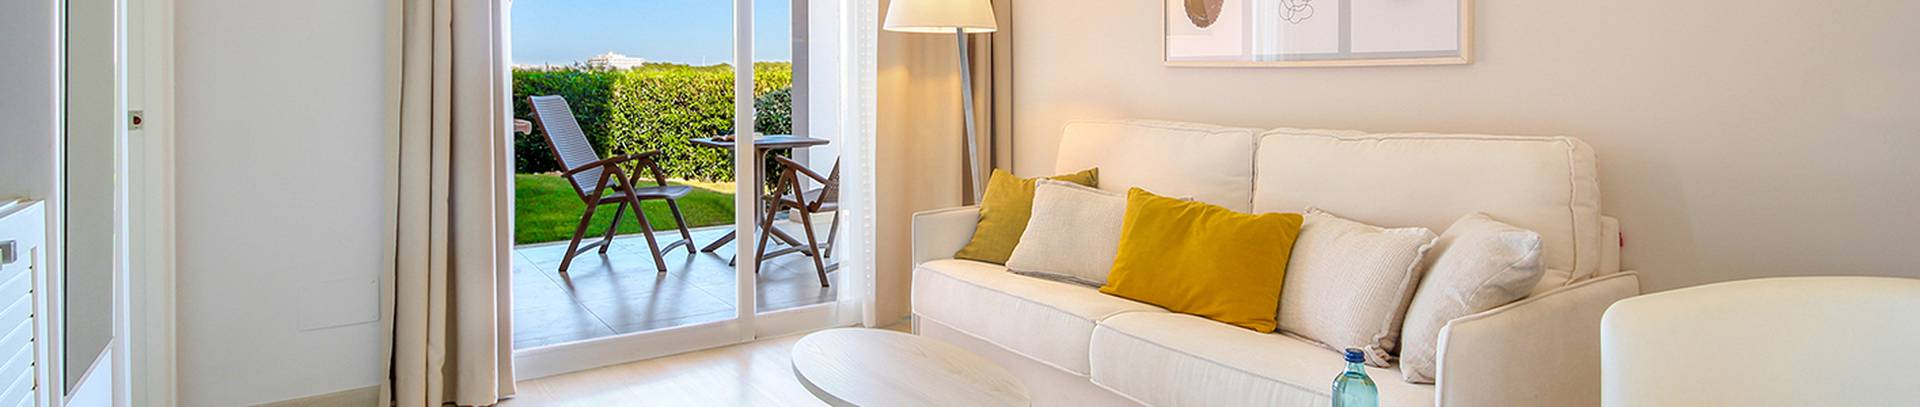 Blau hotels & resorts - Mallorca -